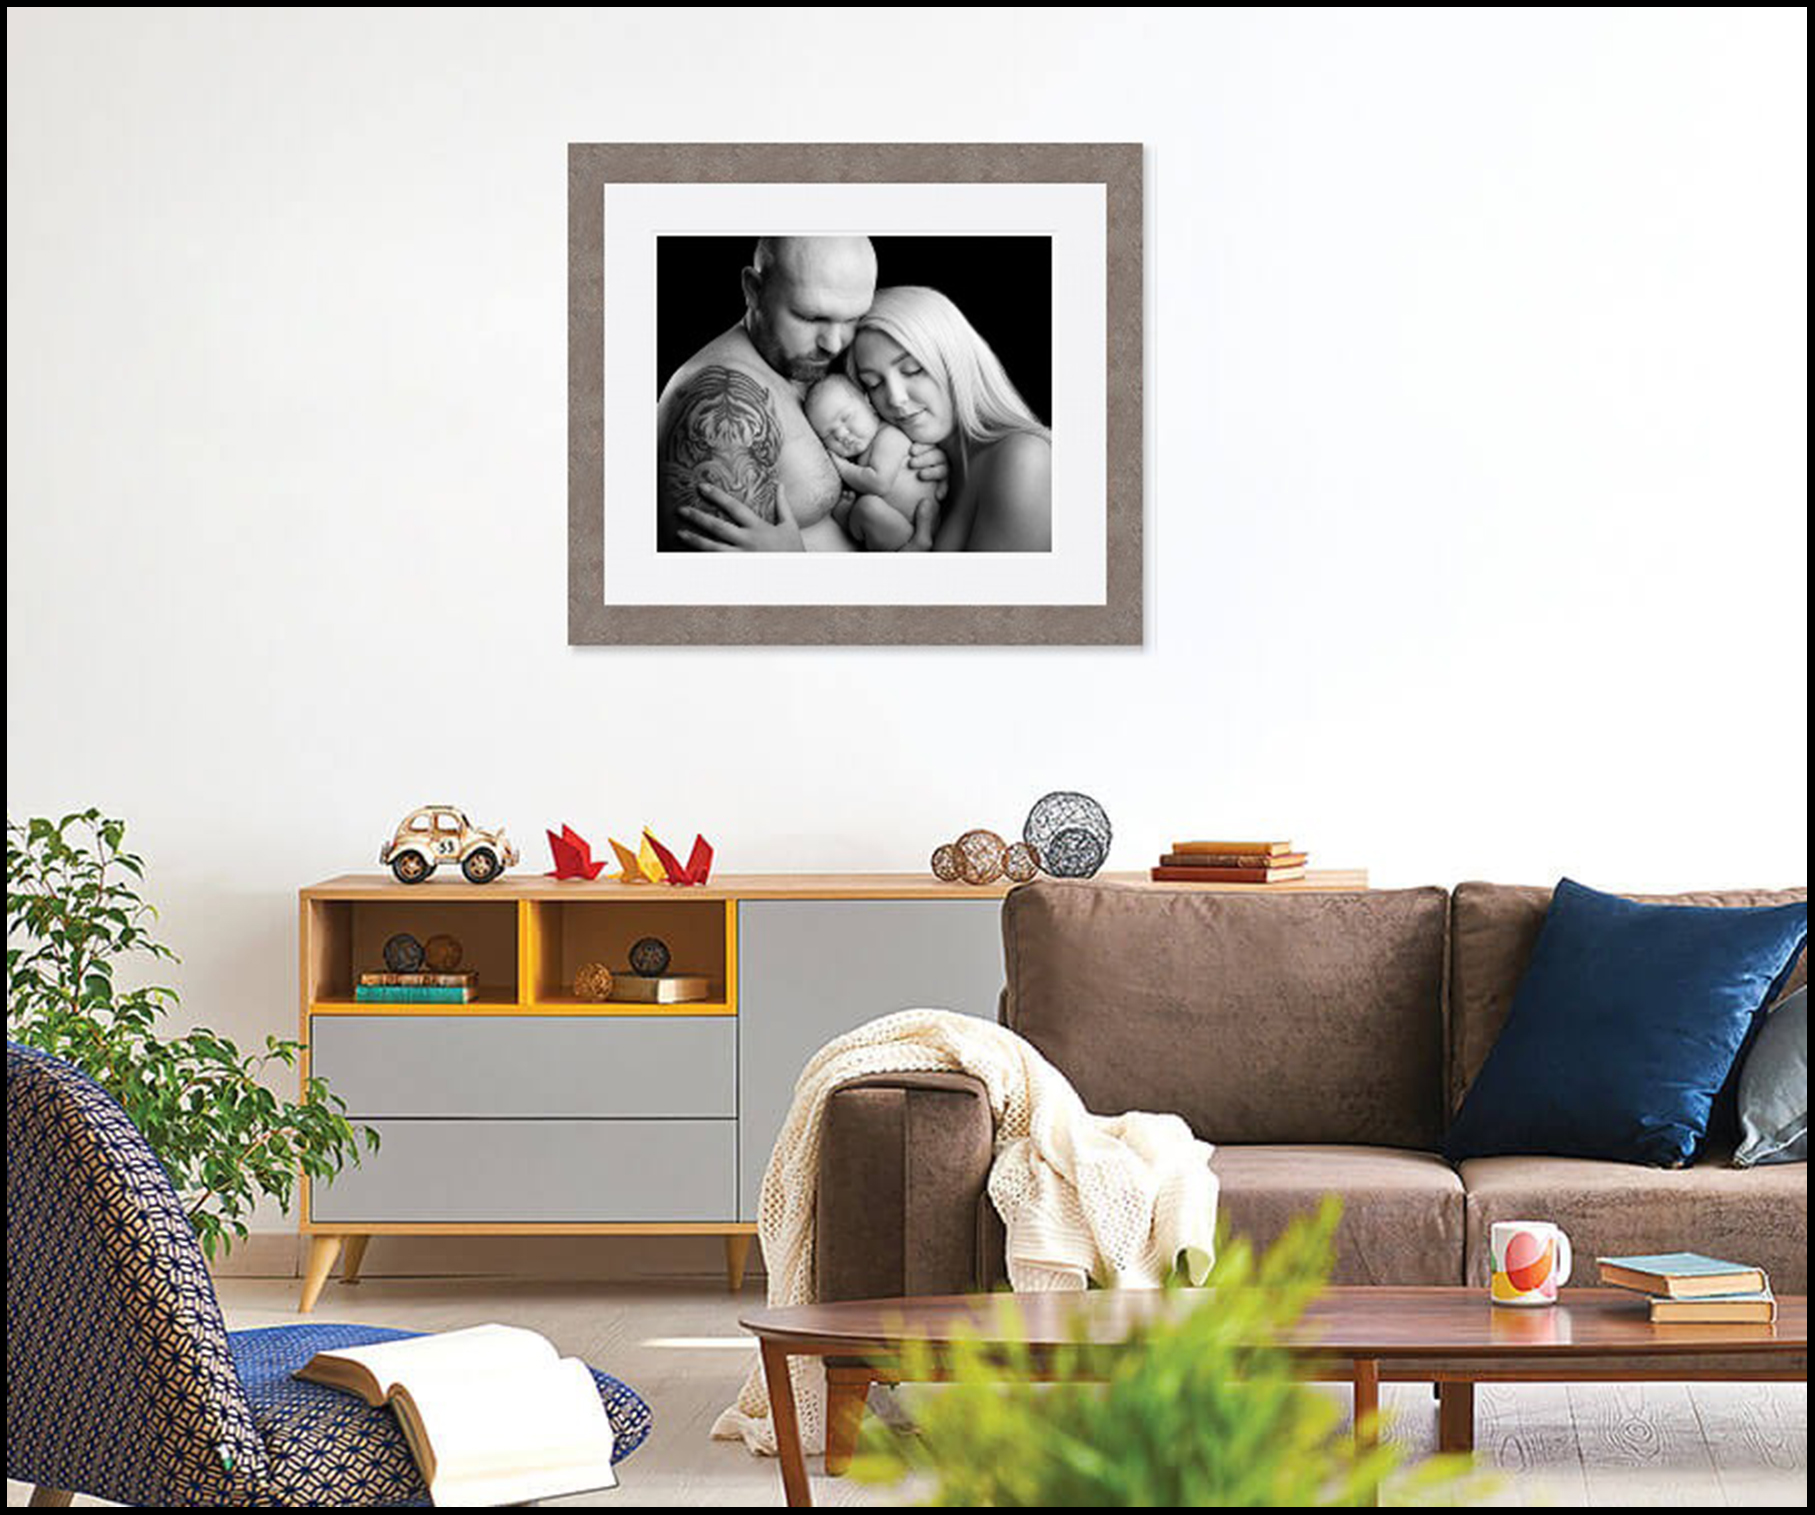 Framed Family portraits proudly displayed in your home